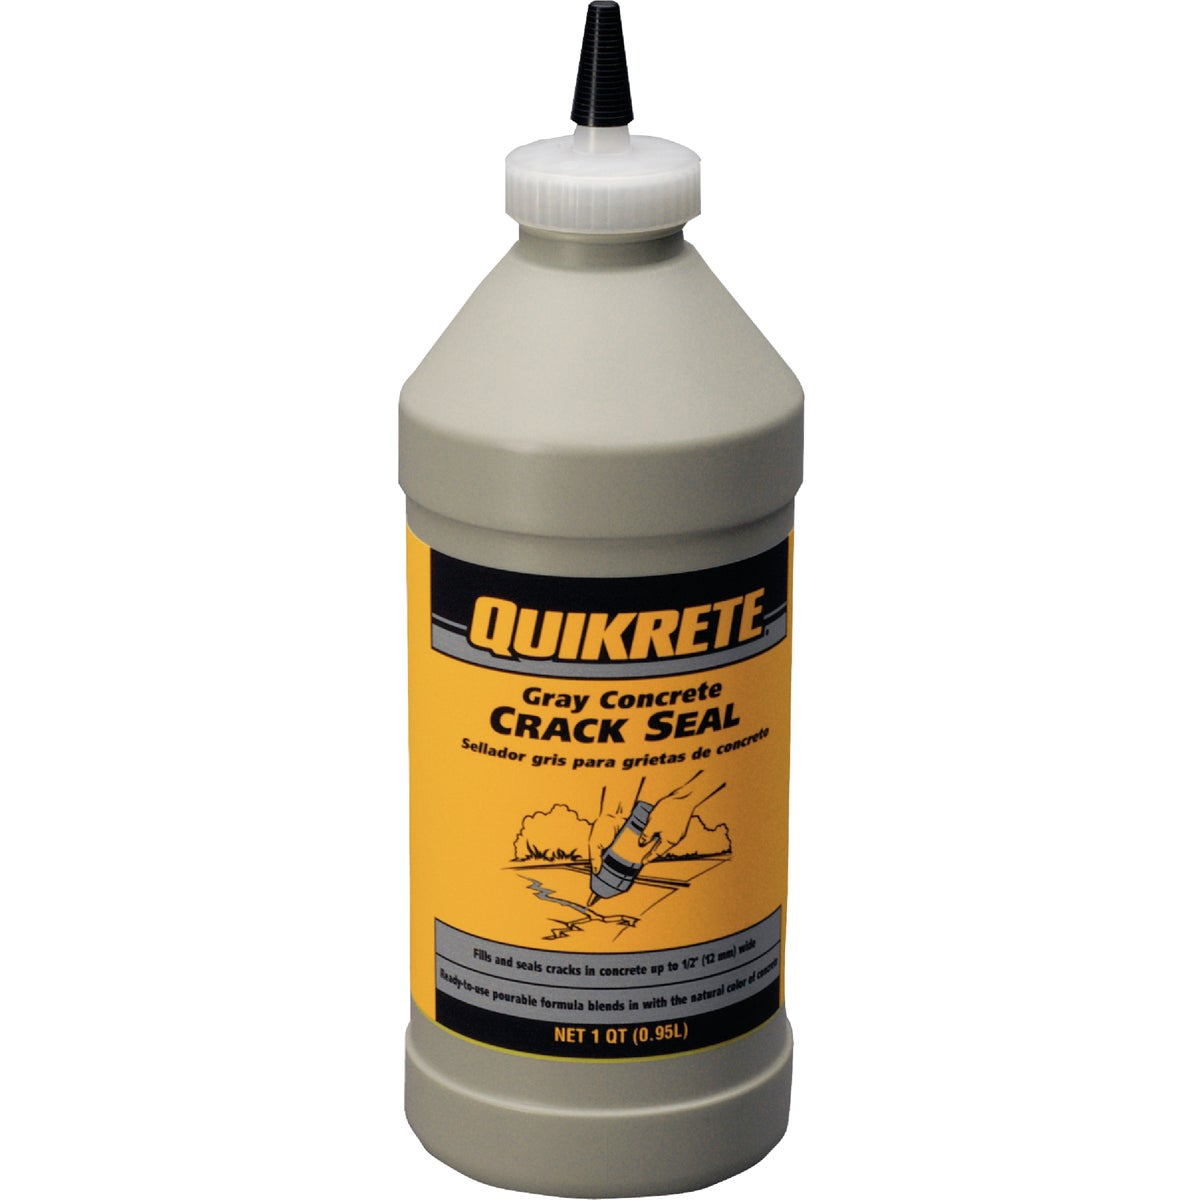 QT CONCRETE CRACK SEAL - 8640-00 by Quikrete Co